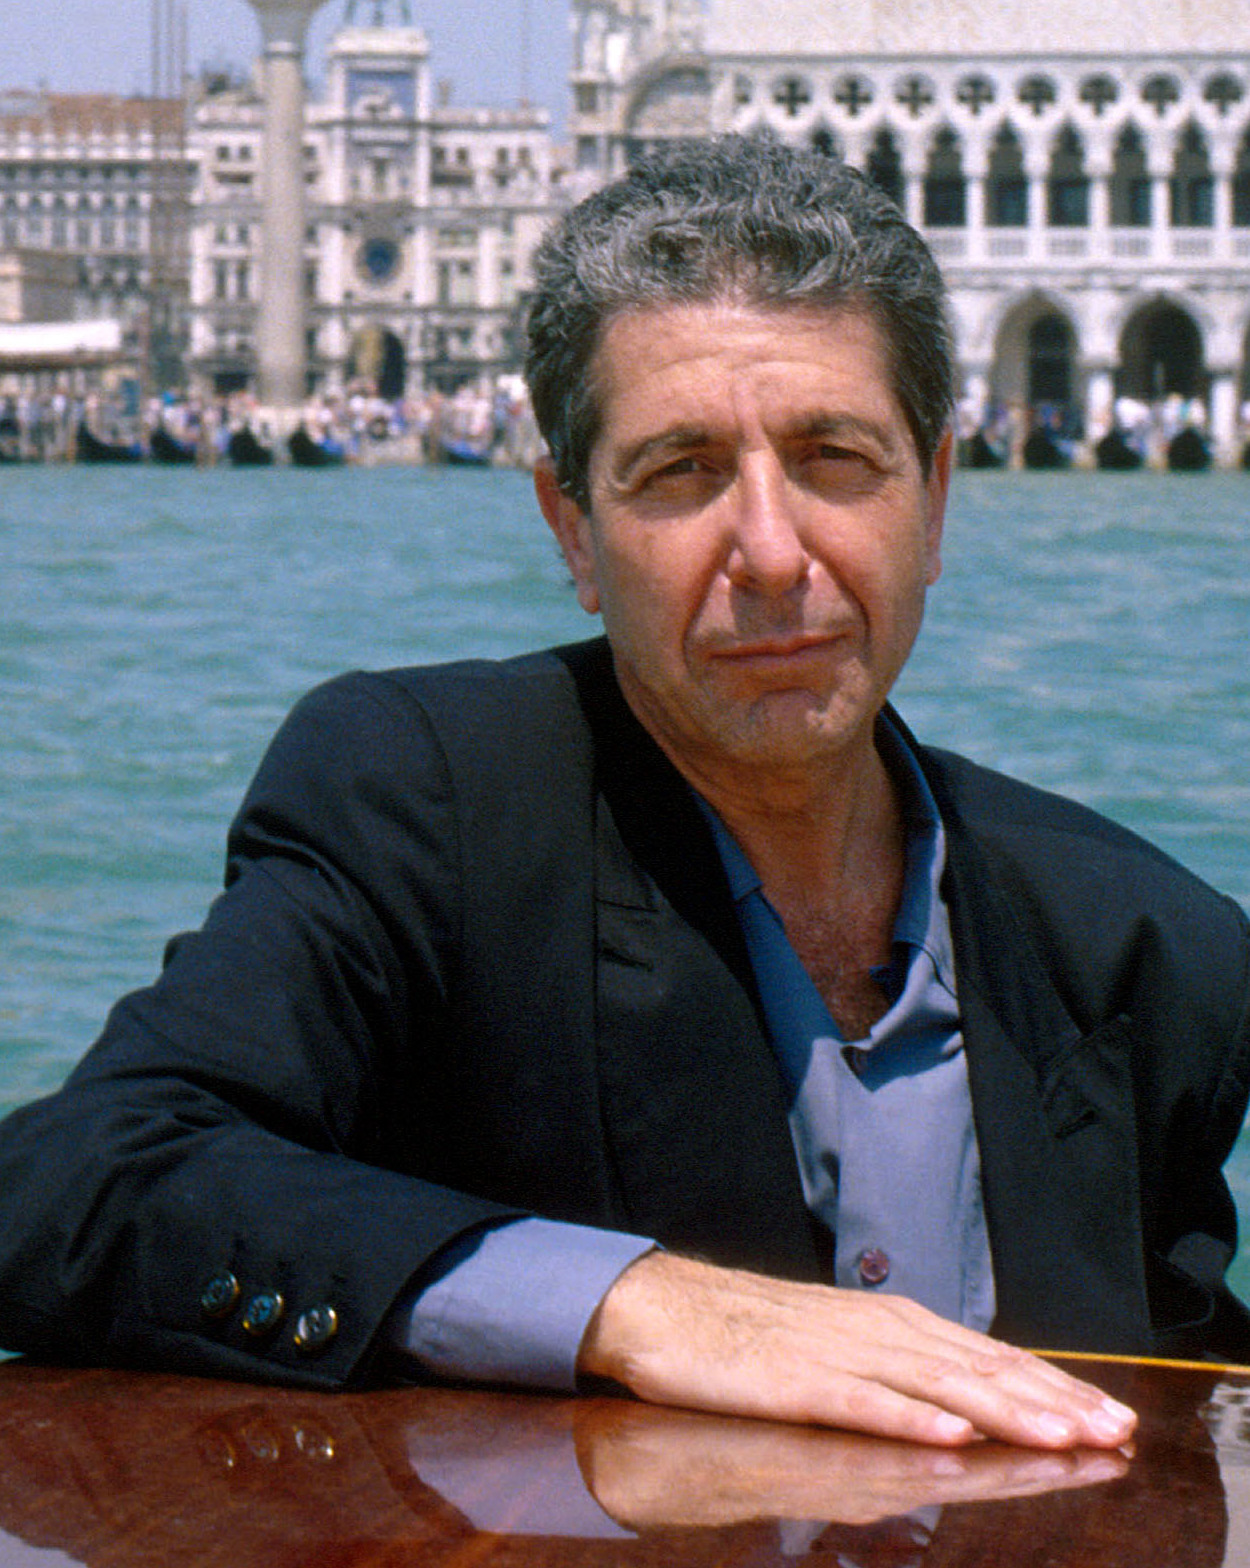 File:Leonard Cohen, 1988 02 (cropped).jpg - Wikimedia Commons